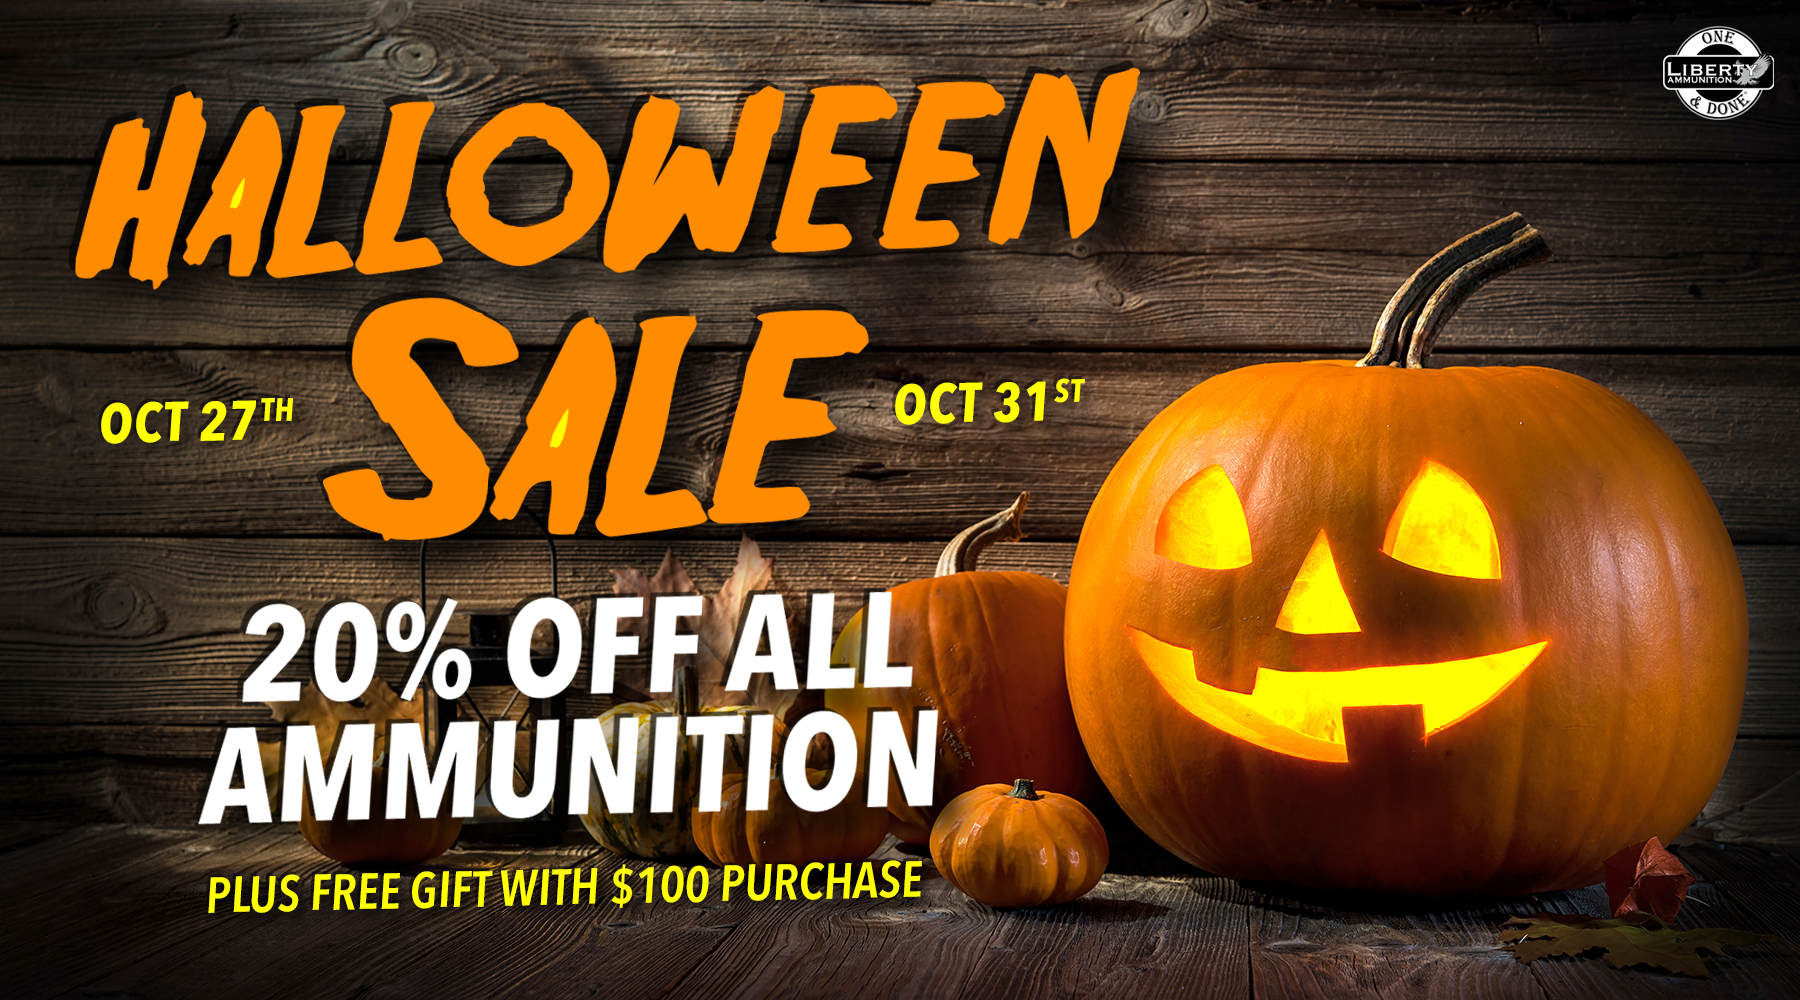 Liberty Ammunition Offers Halloween Sale